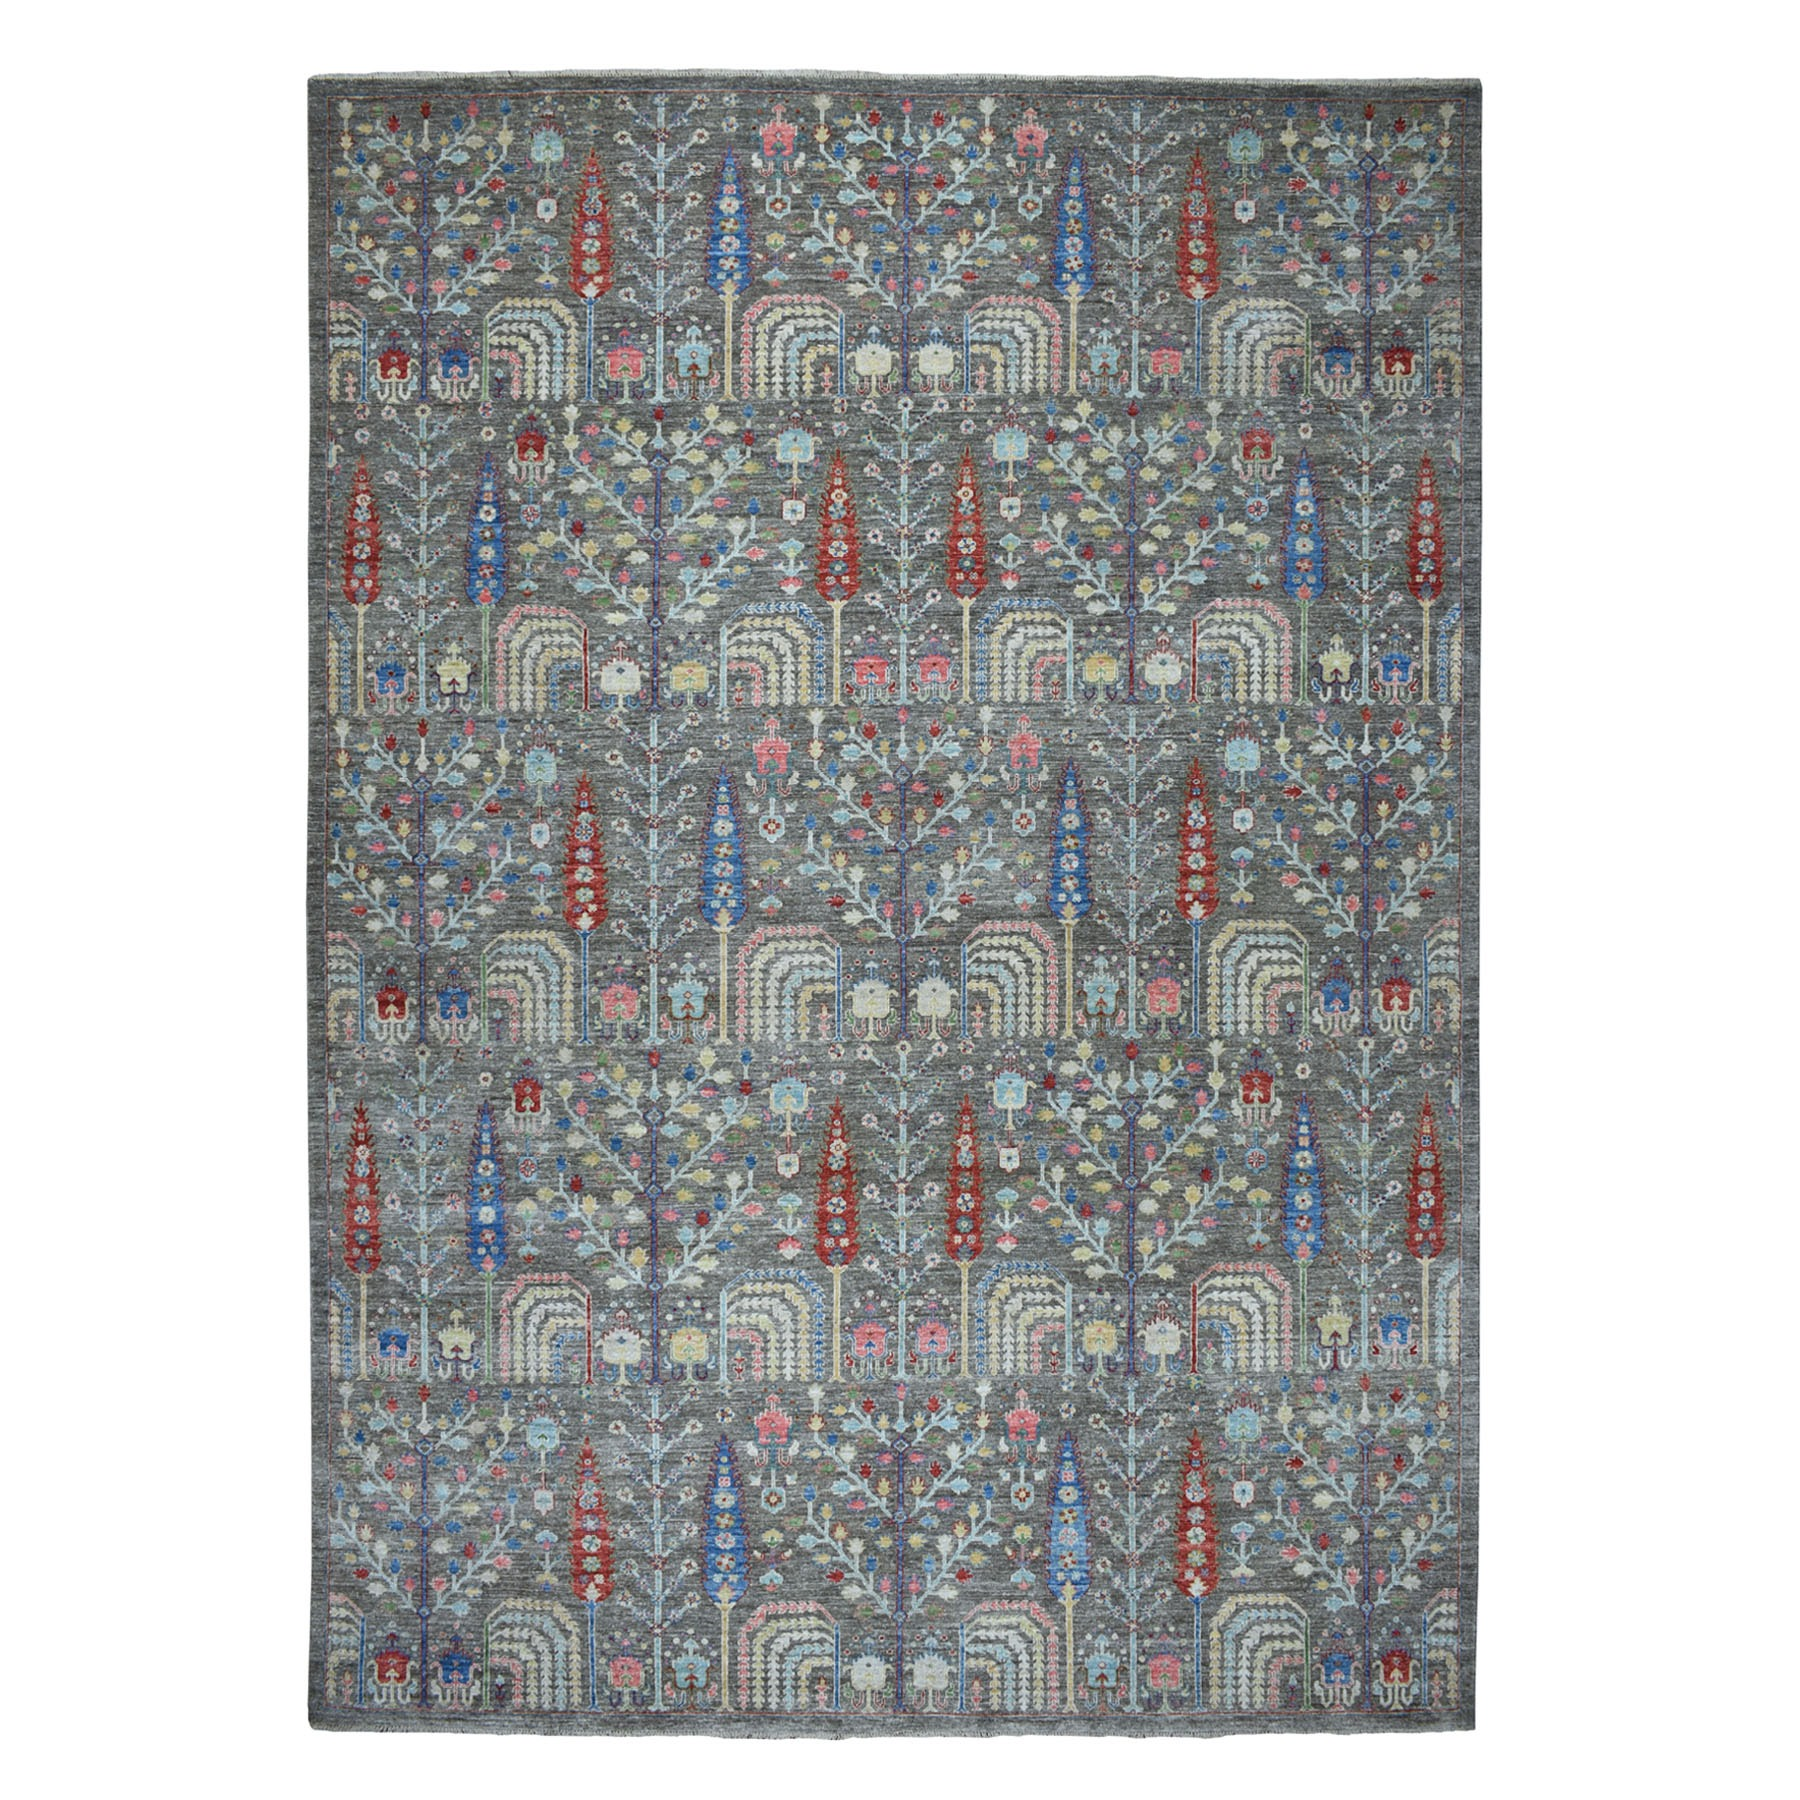 10'X14' Gray With Pop Of Color Willow And Cypress Tree Design Hand Knotted Oriental Rug moaedac0